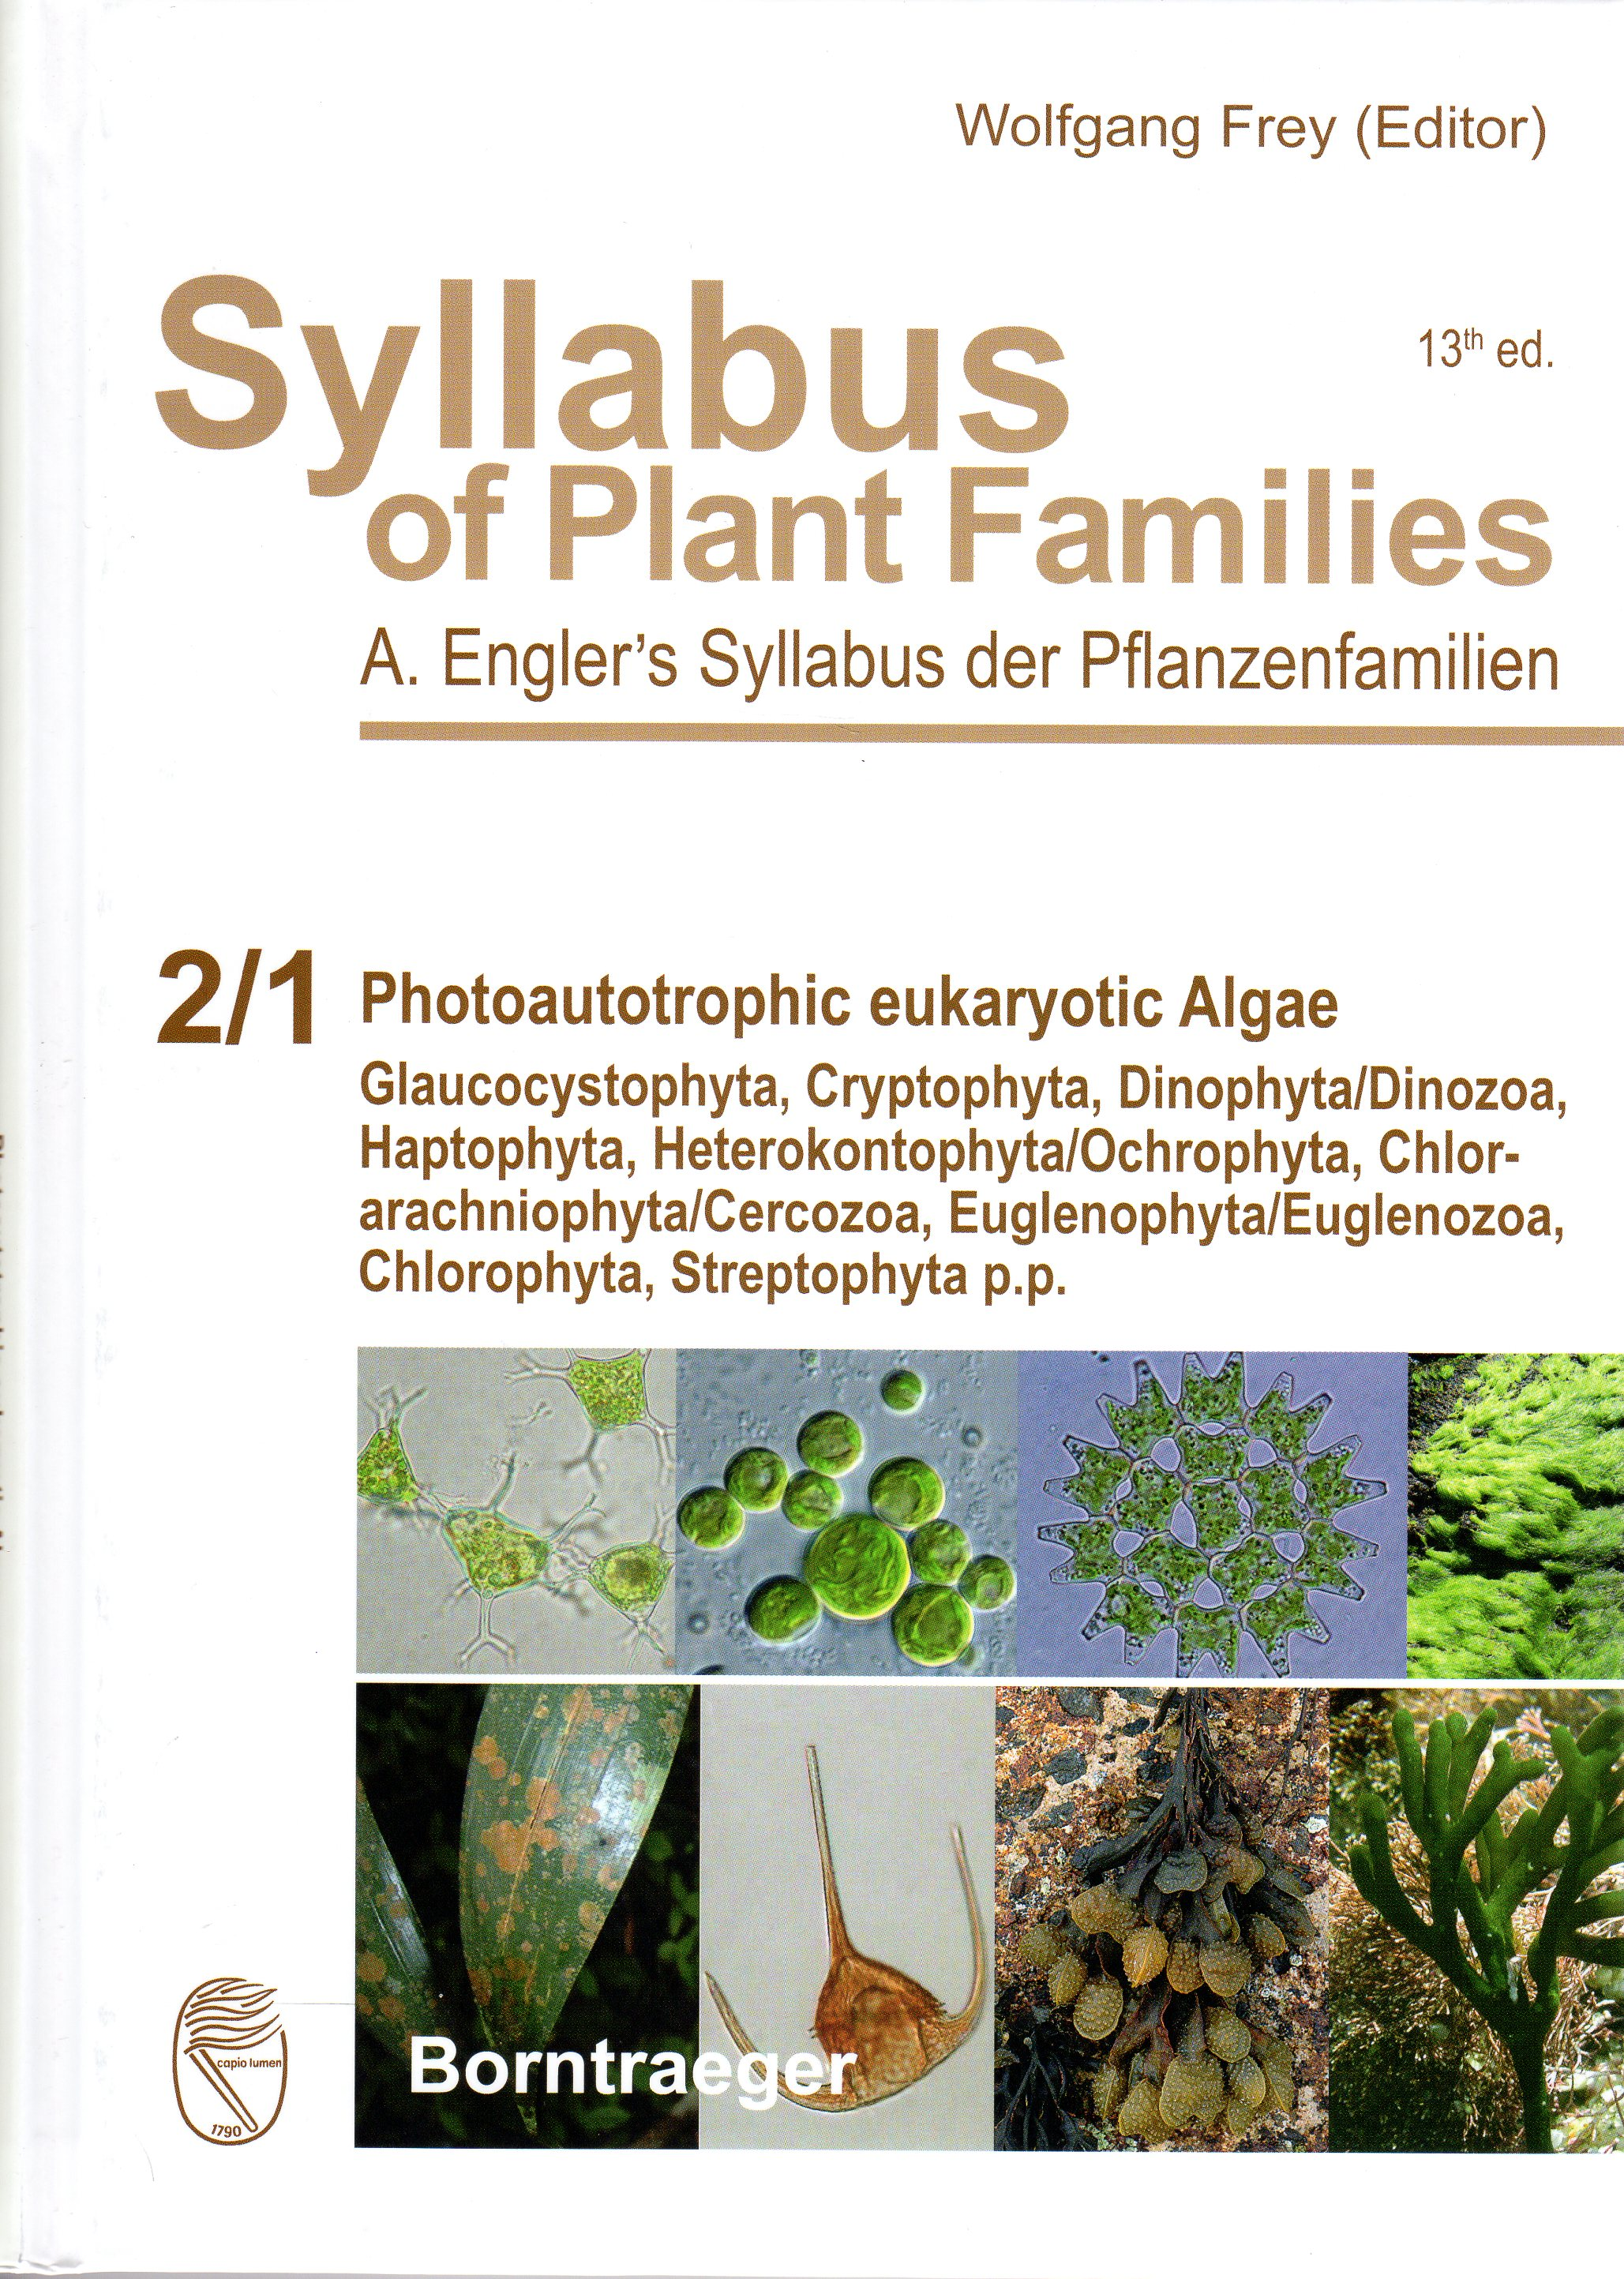 Blindow, I. et al. (2015): Part 2/1. Photoautotrophic eukaryotic Algae